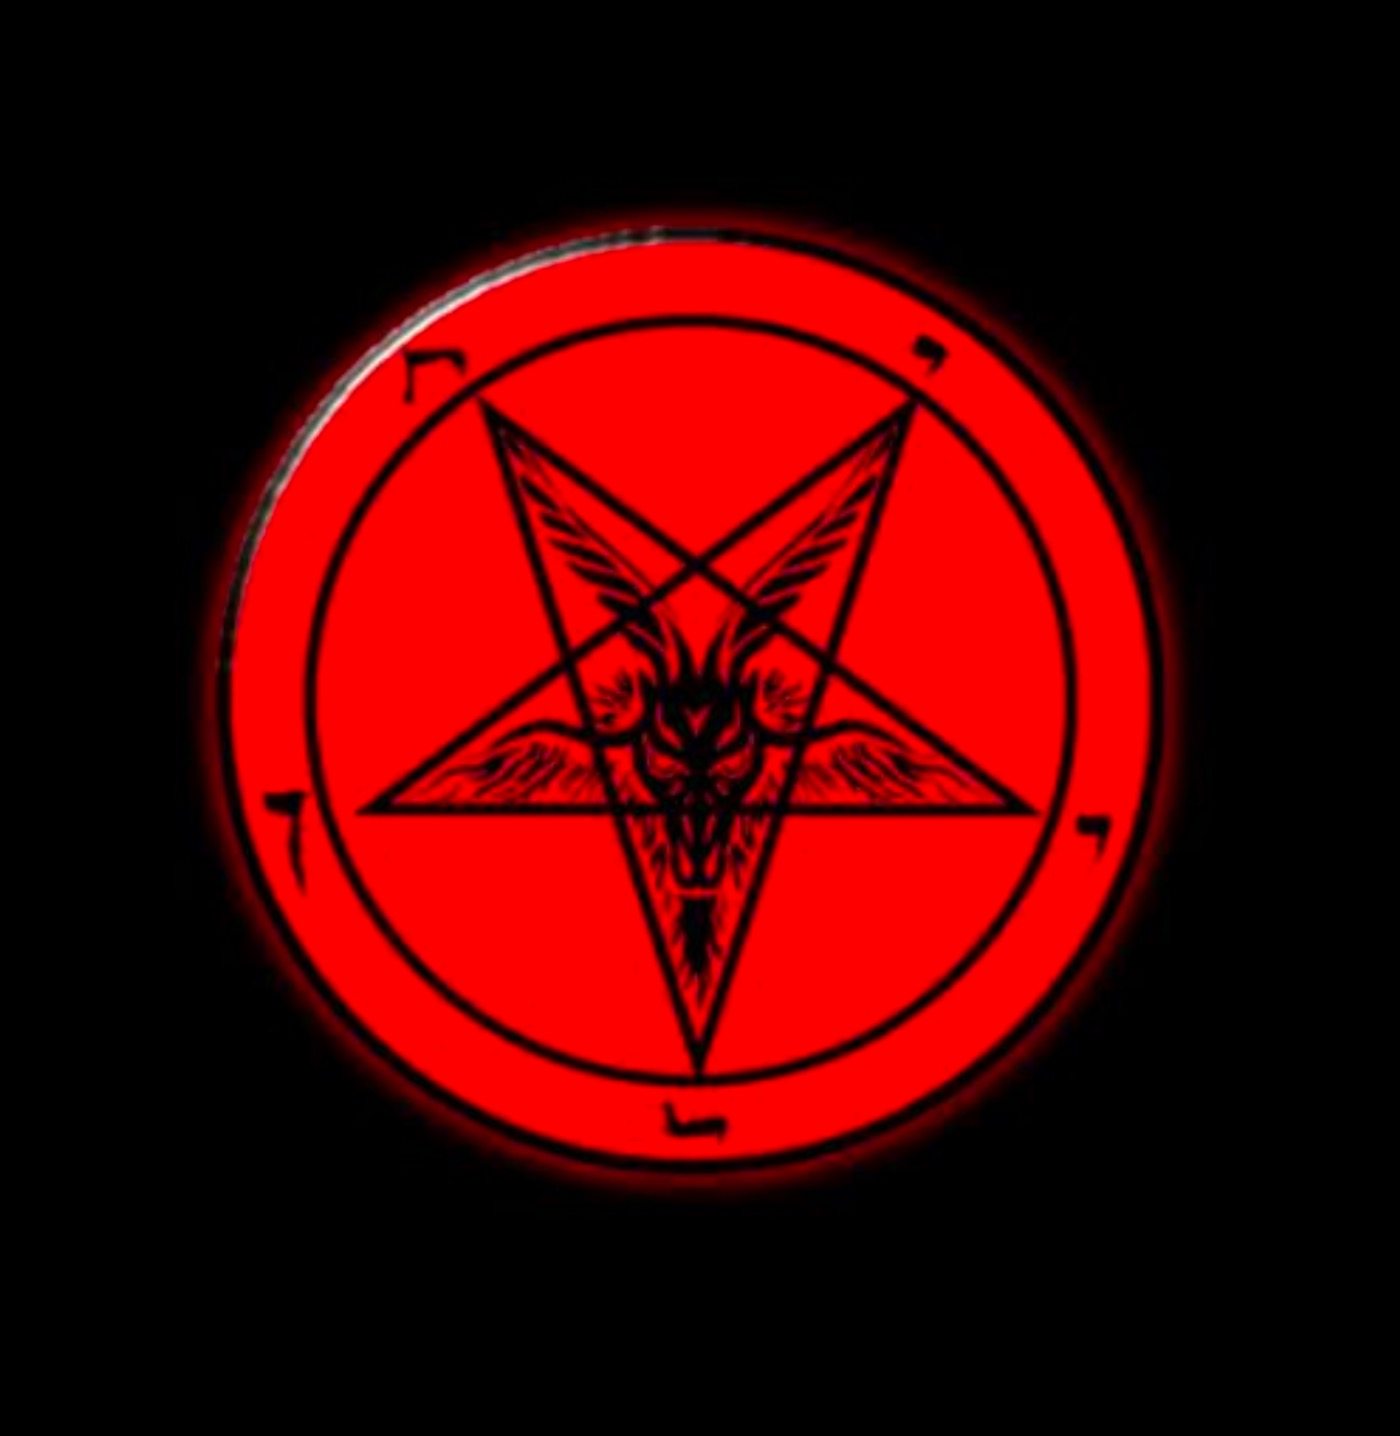 Grand Climax Satanic Ritual Video